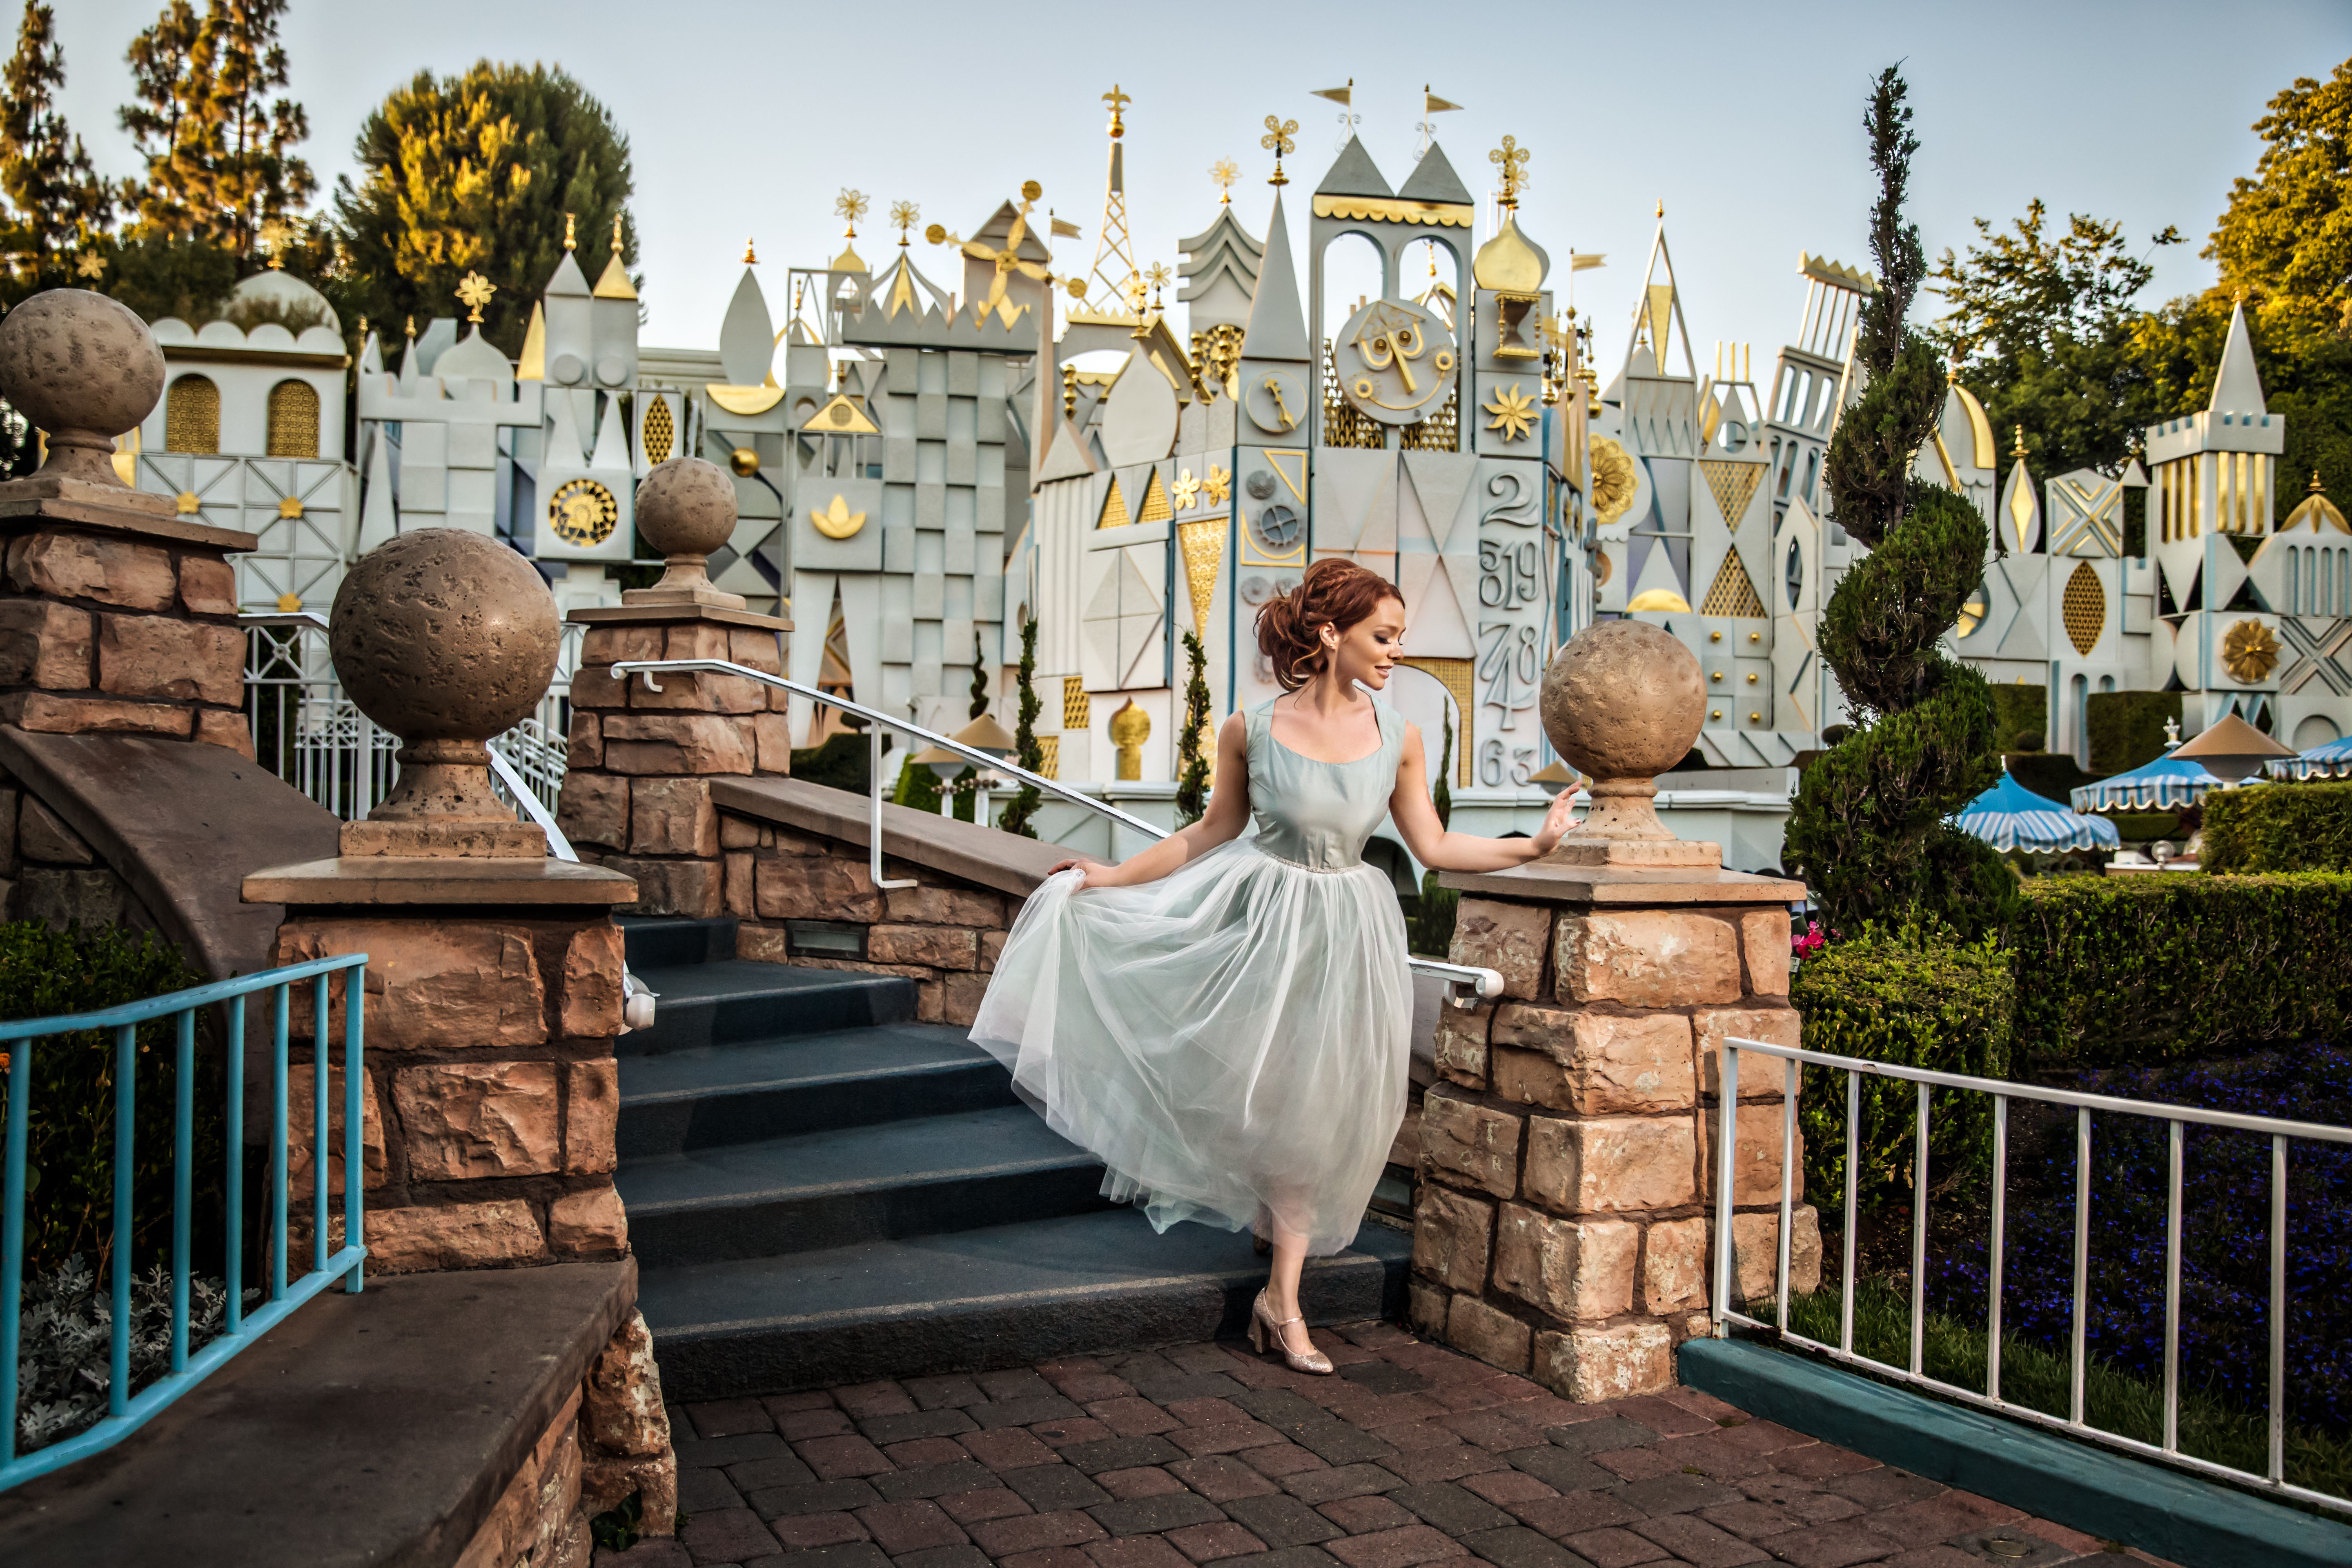 After a breakup this girl took the most beautiful Disney Princess-inspired solo engagement photos